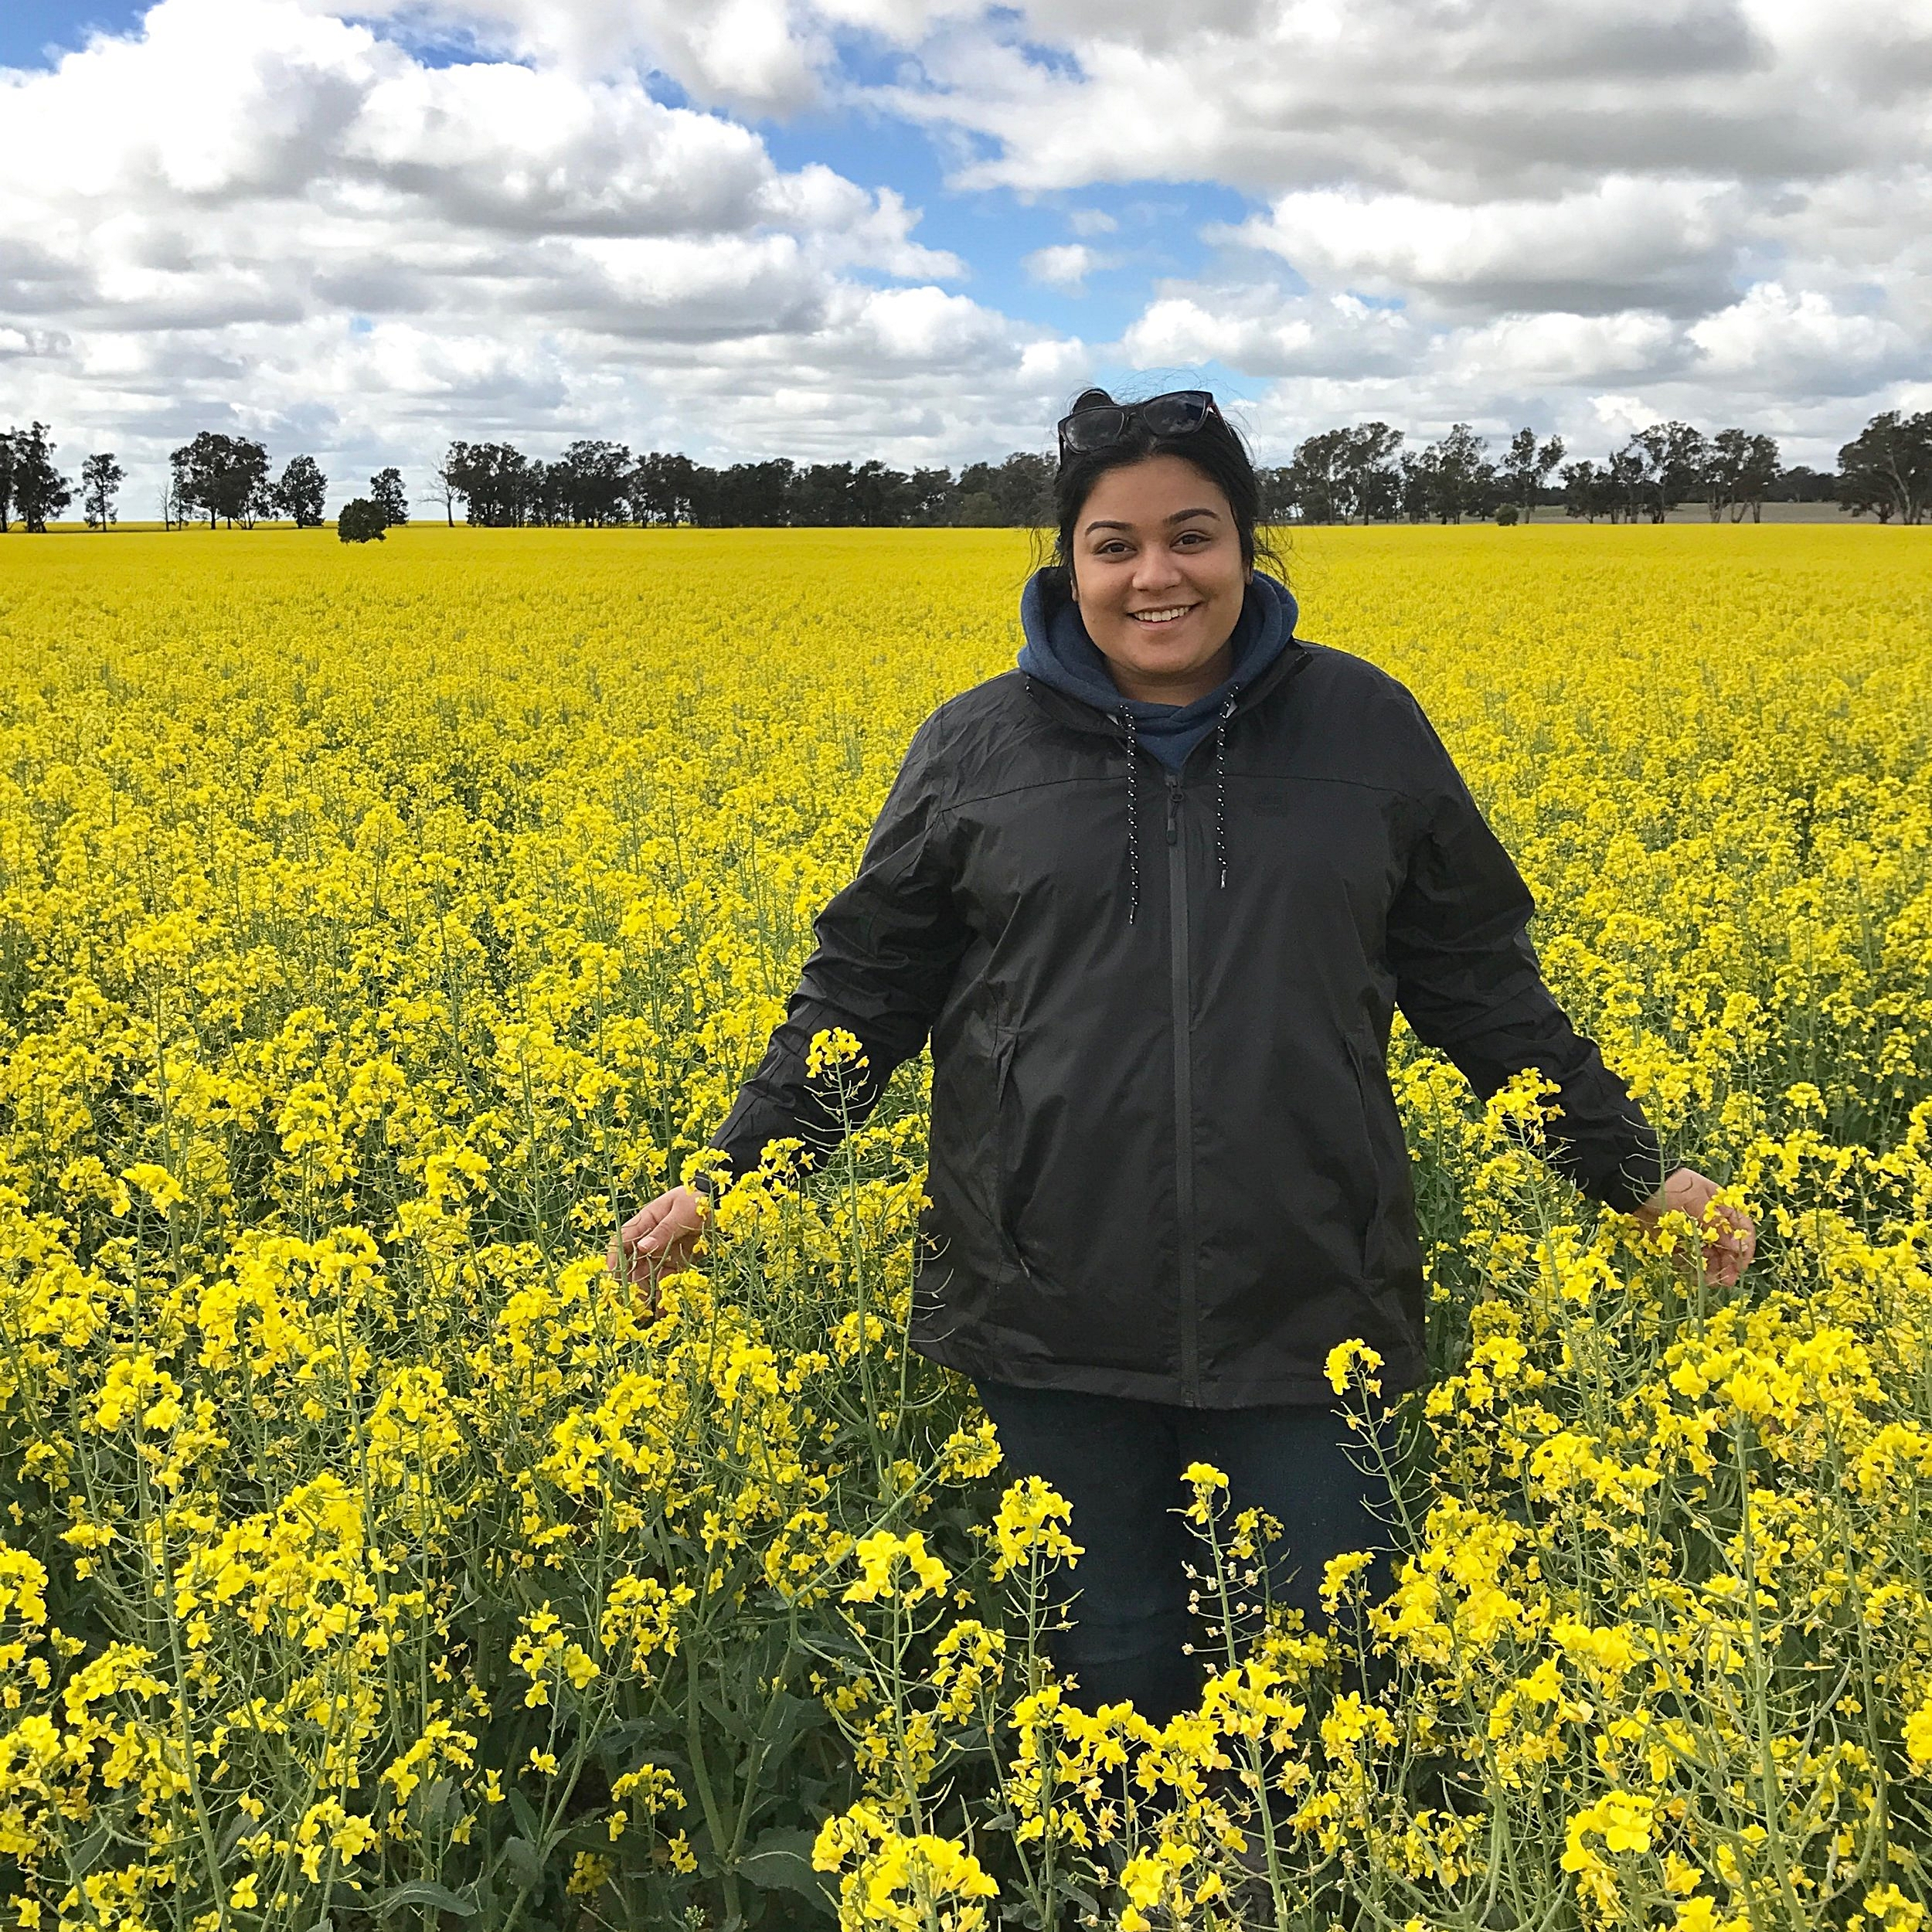 Rayali Banerjee on a farm in Temora, New South Wales.